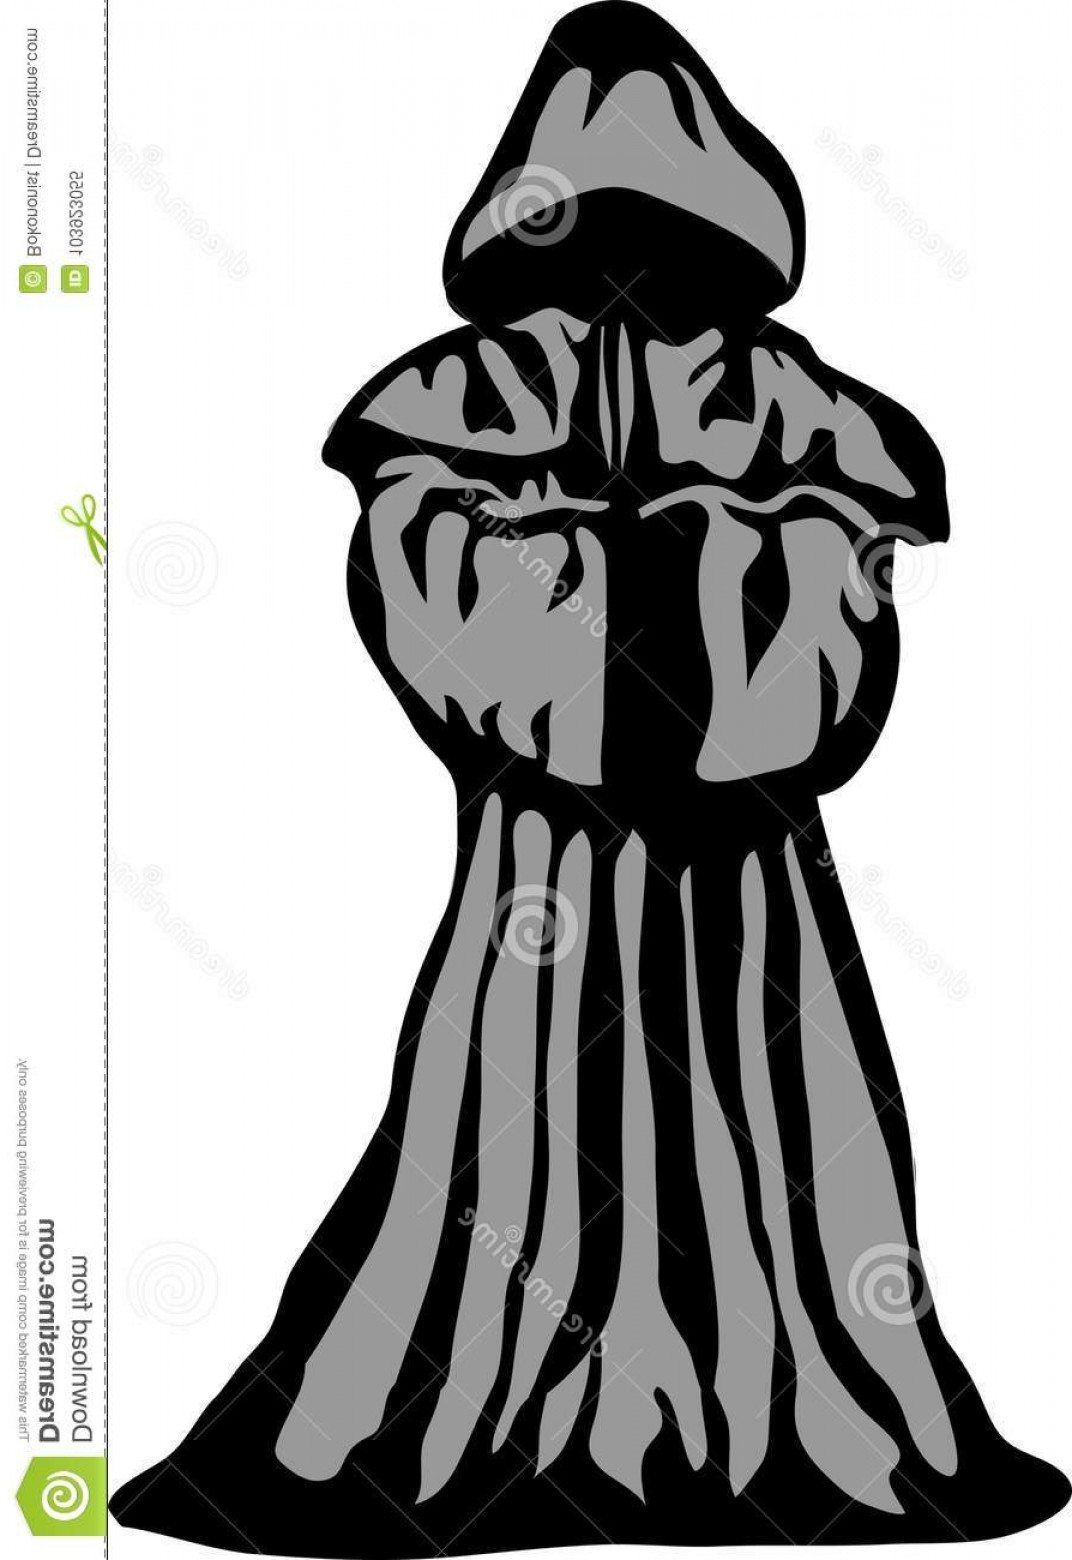 Catholic Clip Art Vector: Robed Person Stylized Black Grey Vector Illustration Medieval Catholic Monk Image